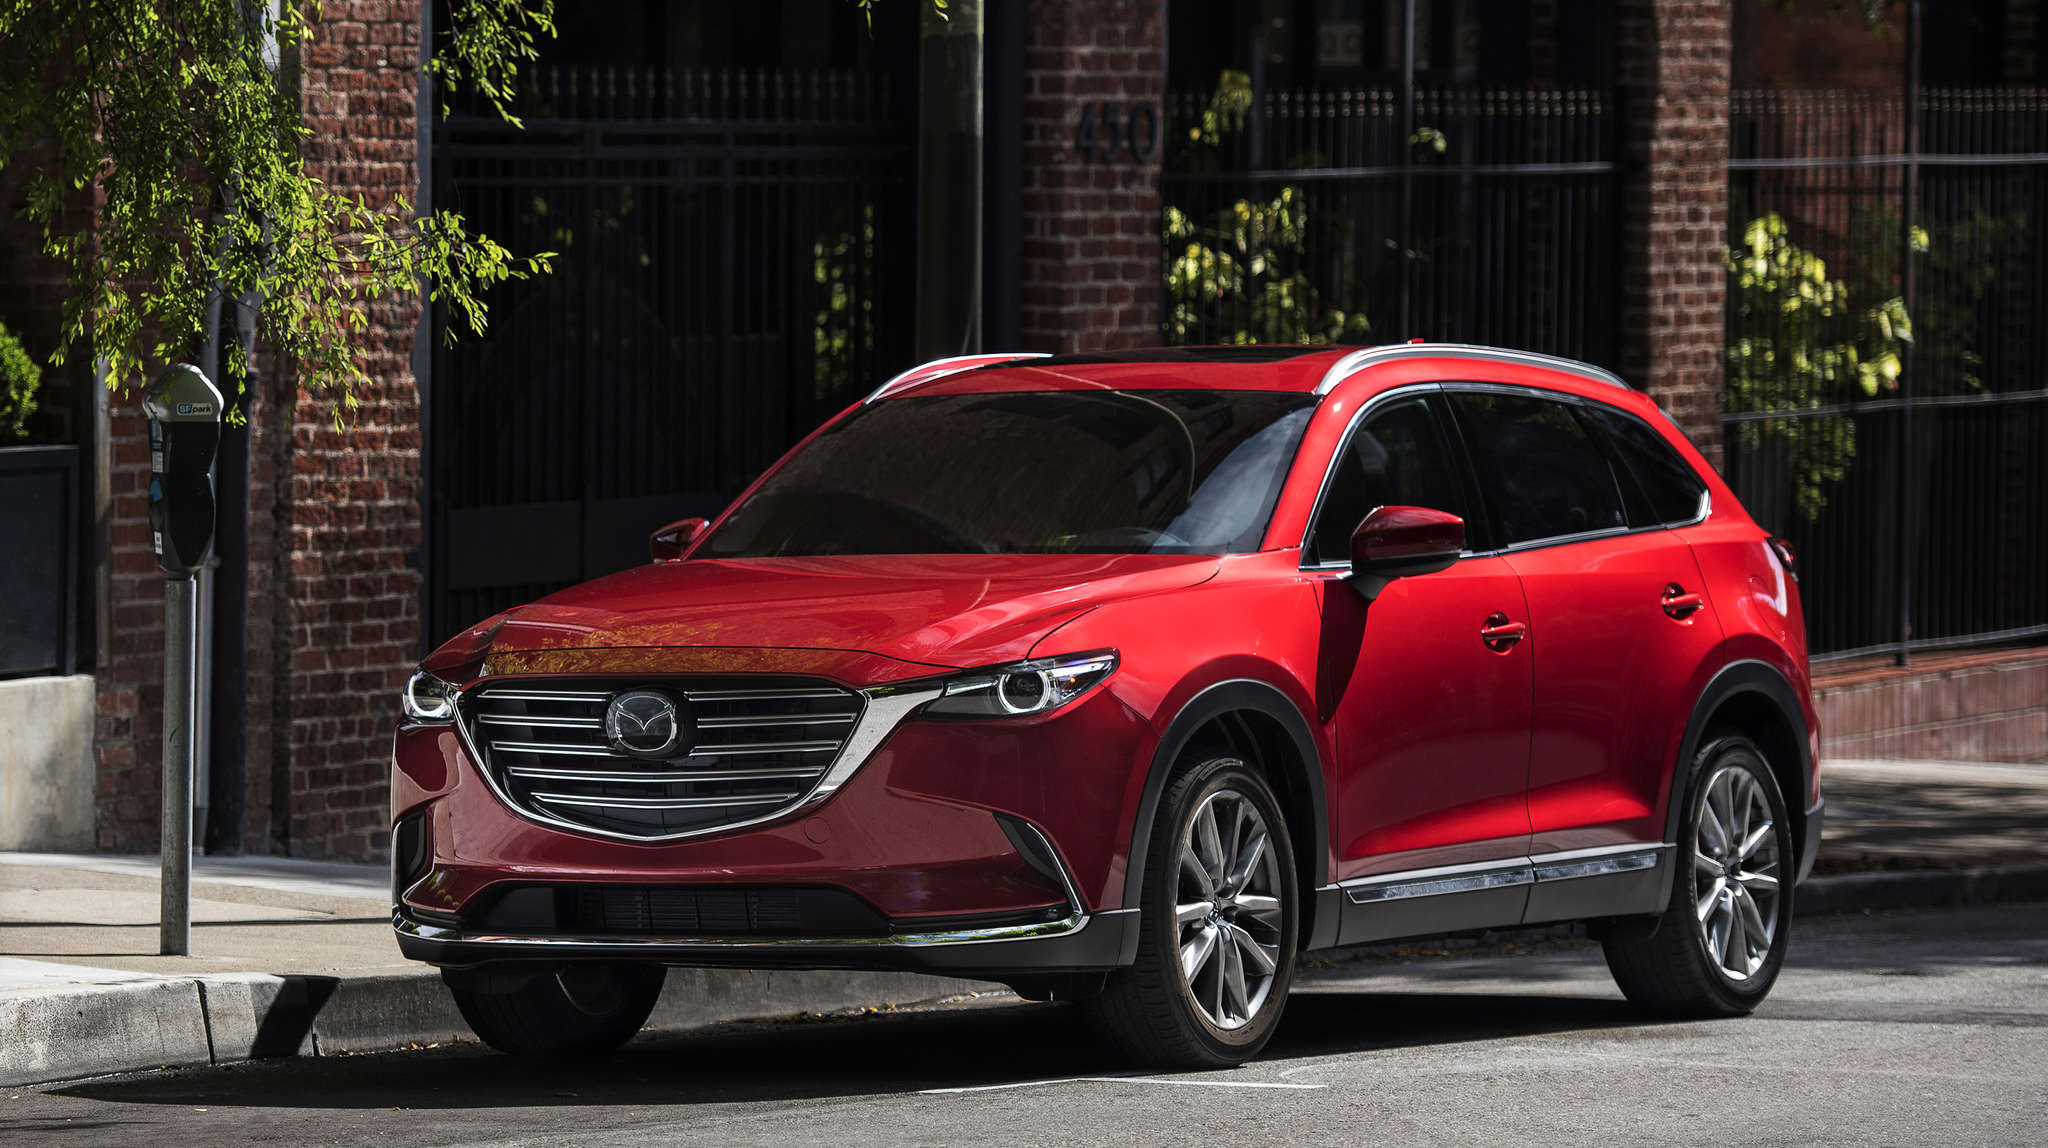 Mazda´s three-row CX-9 is much improved over the 2015 model - including in fuel economy, which had been a weak point.